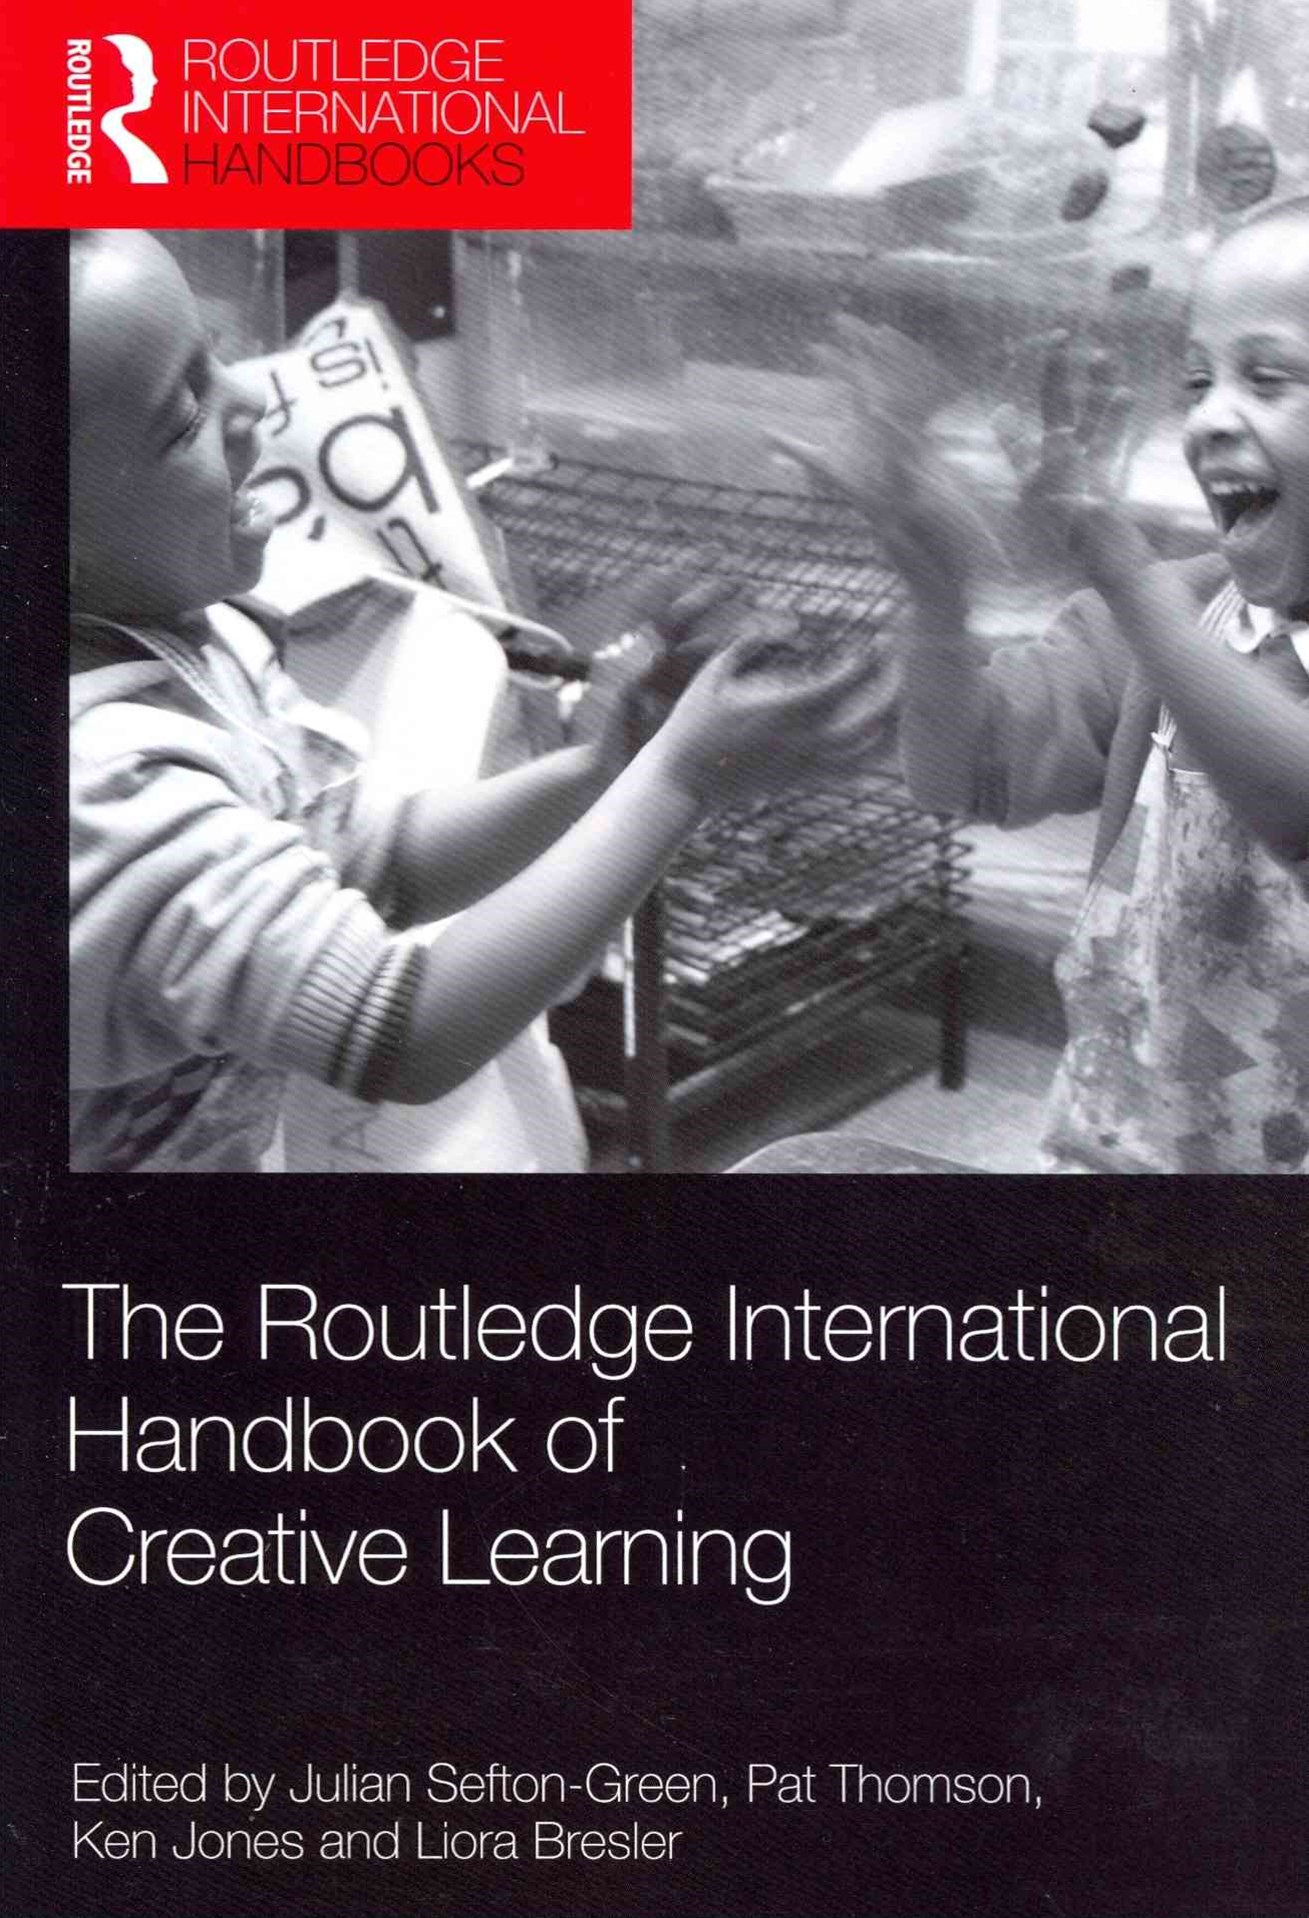 Routledge International Handbook of Creative Learning